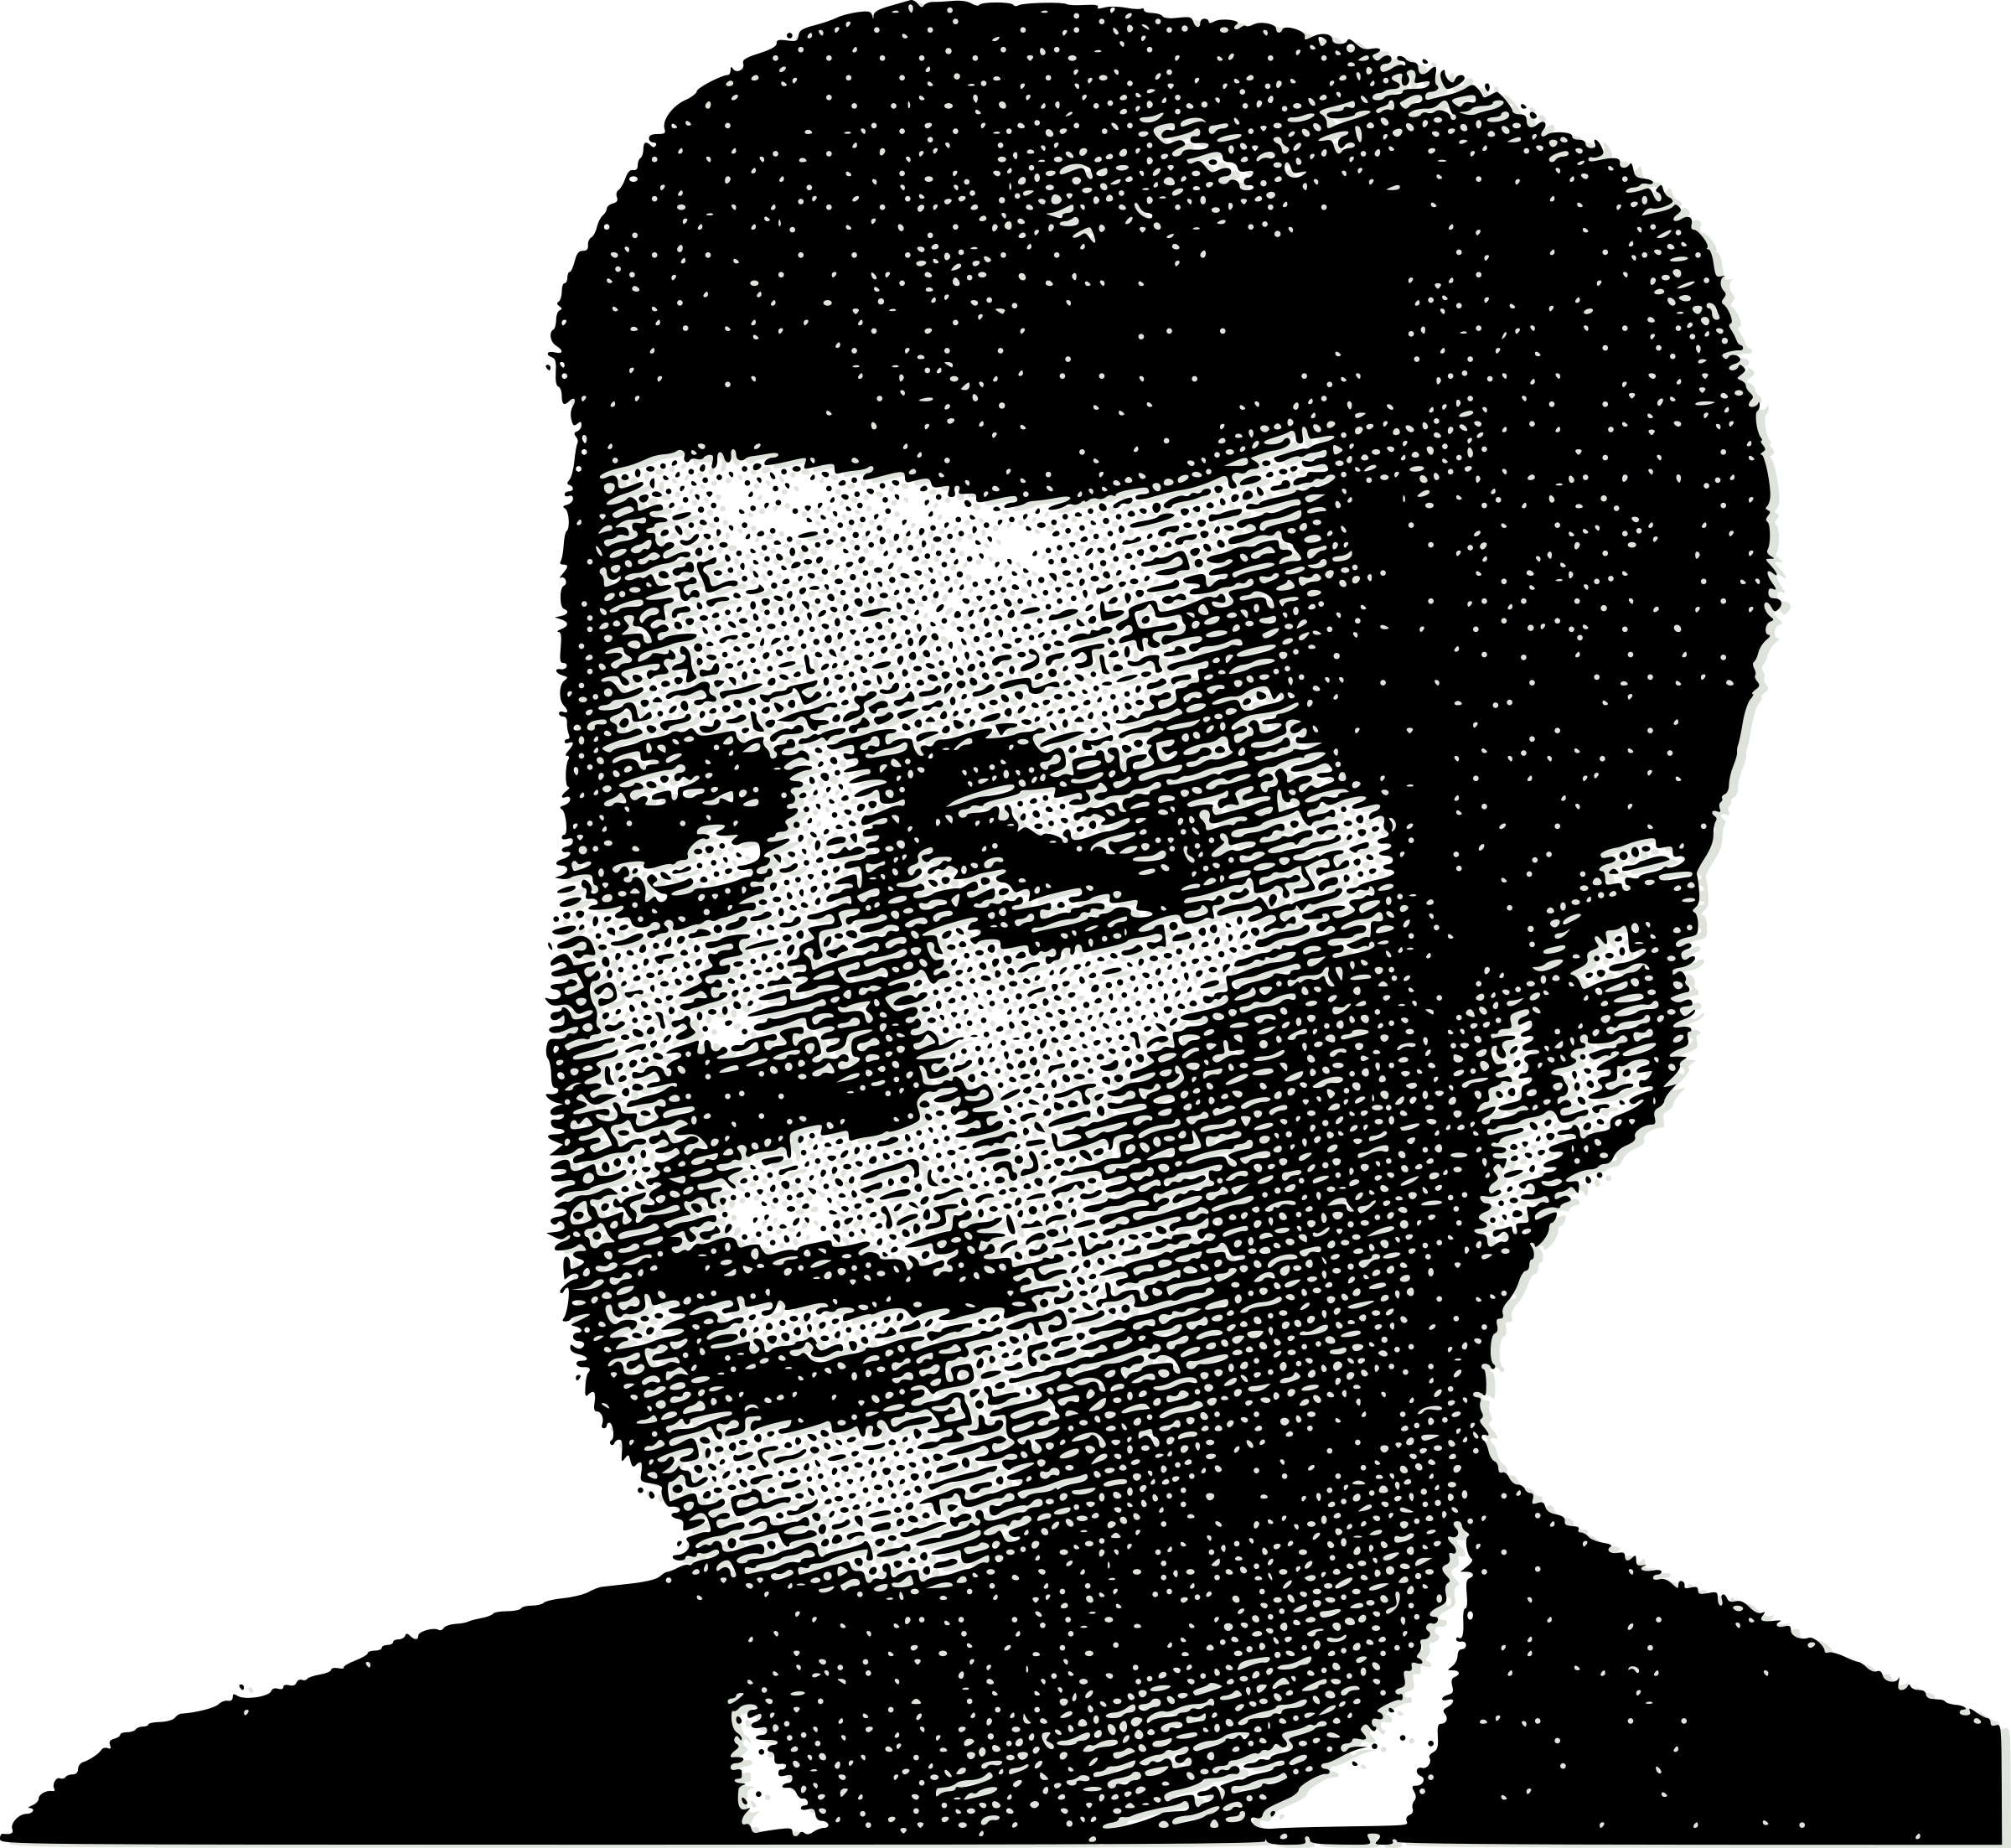 JFK's Face by j4p4n